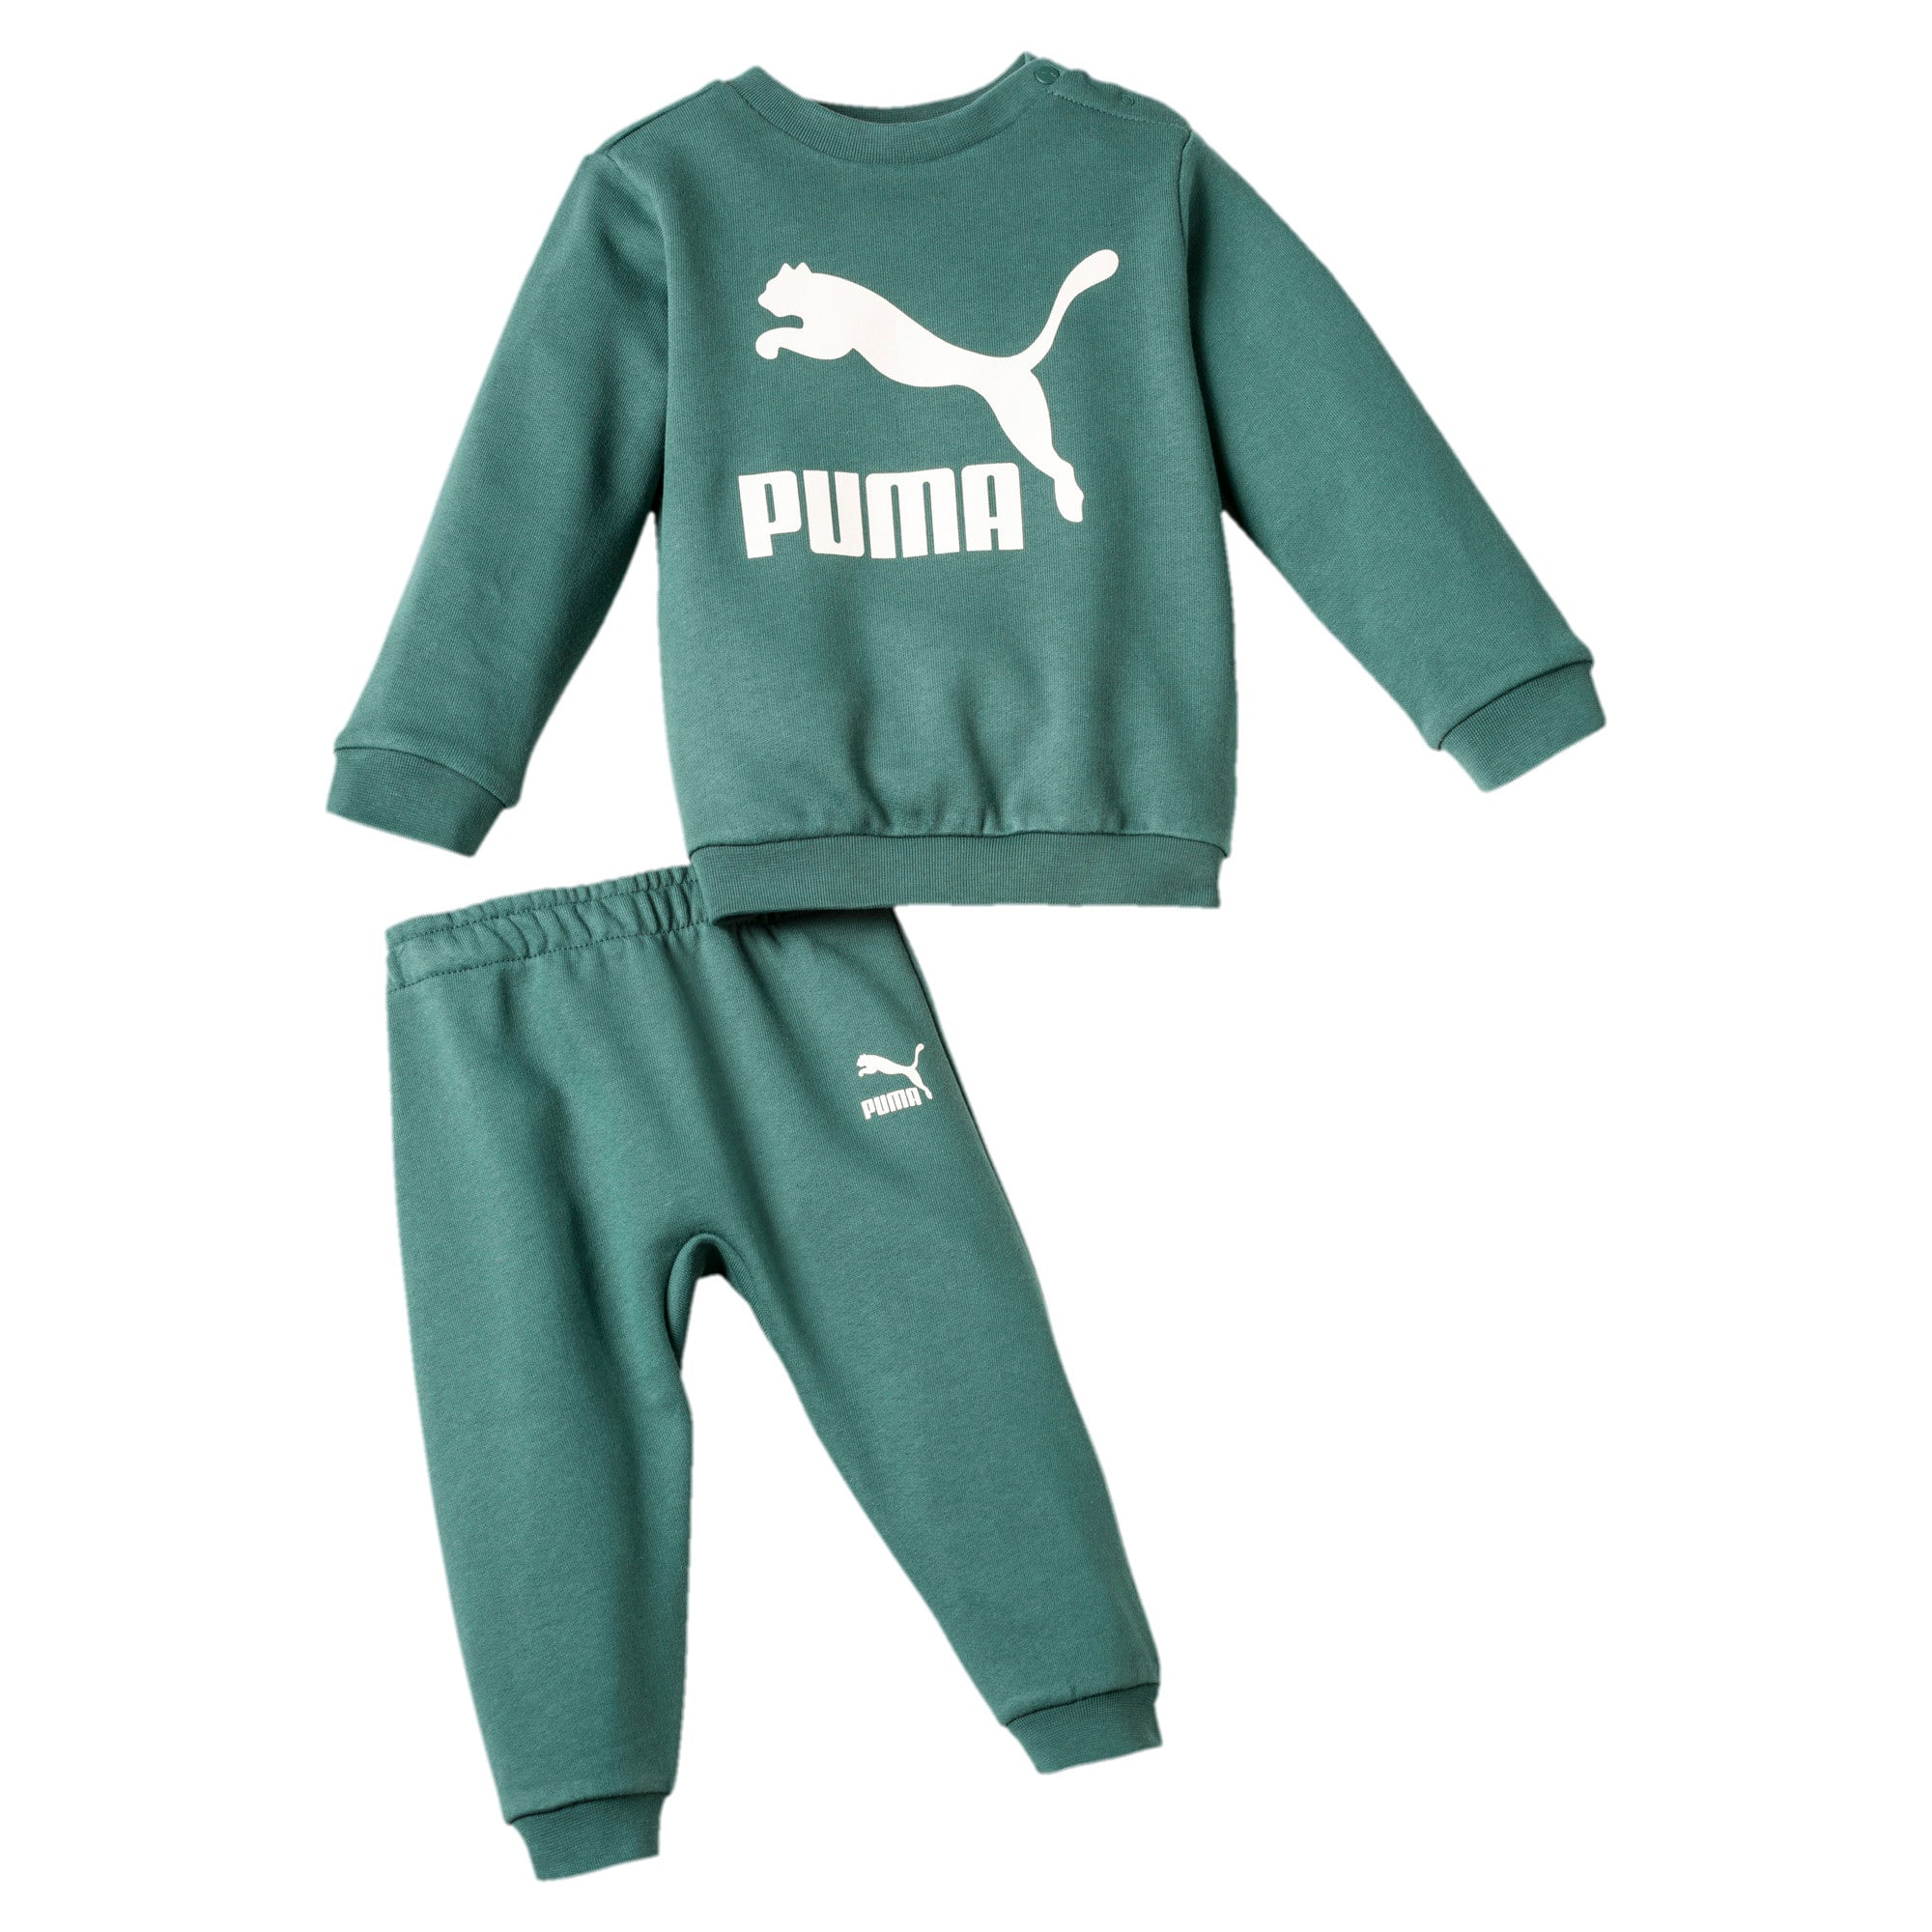 Thumbnail 1 of Street Wear Babies' Jogger Set, Bistro Green, medium